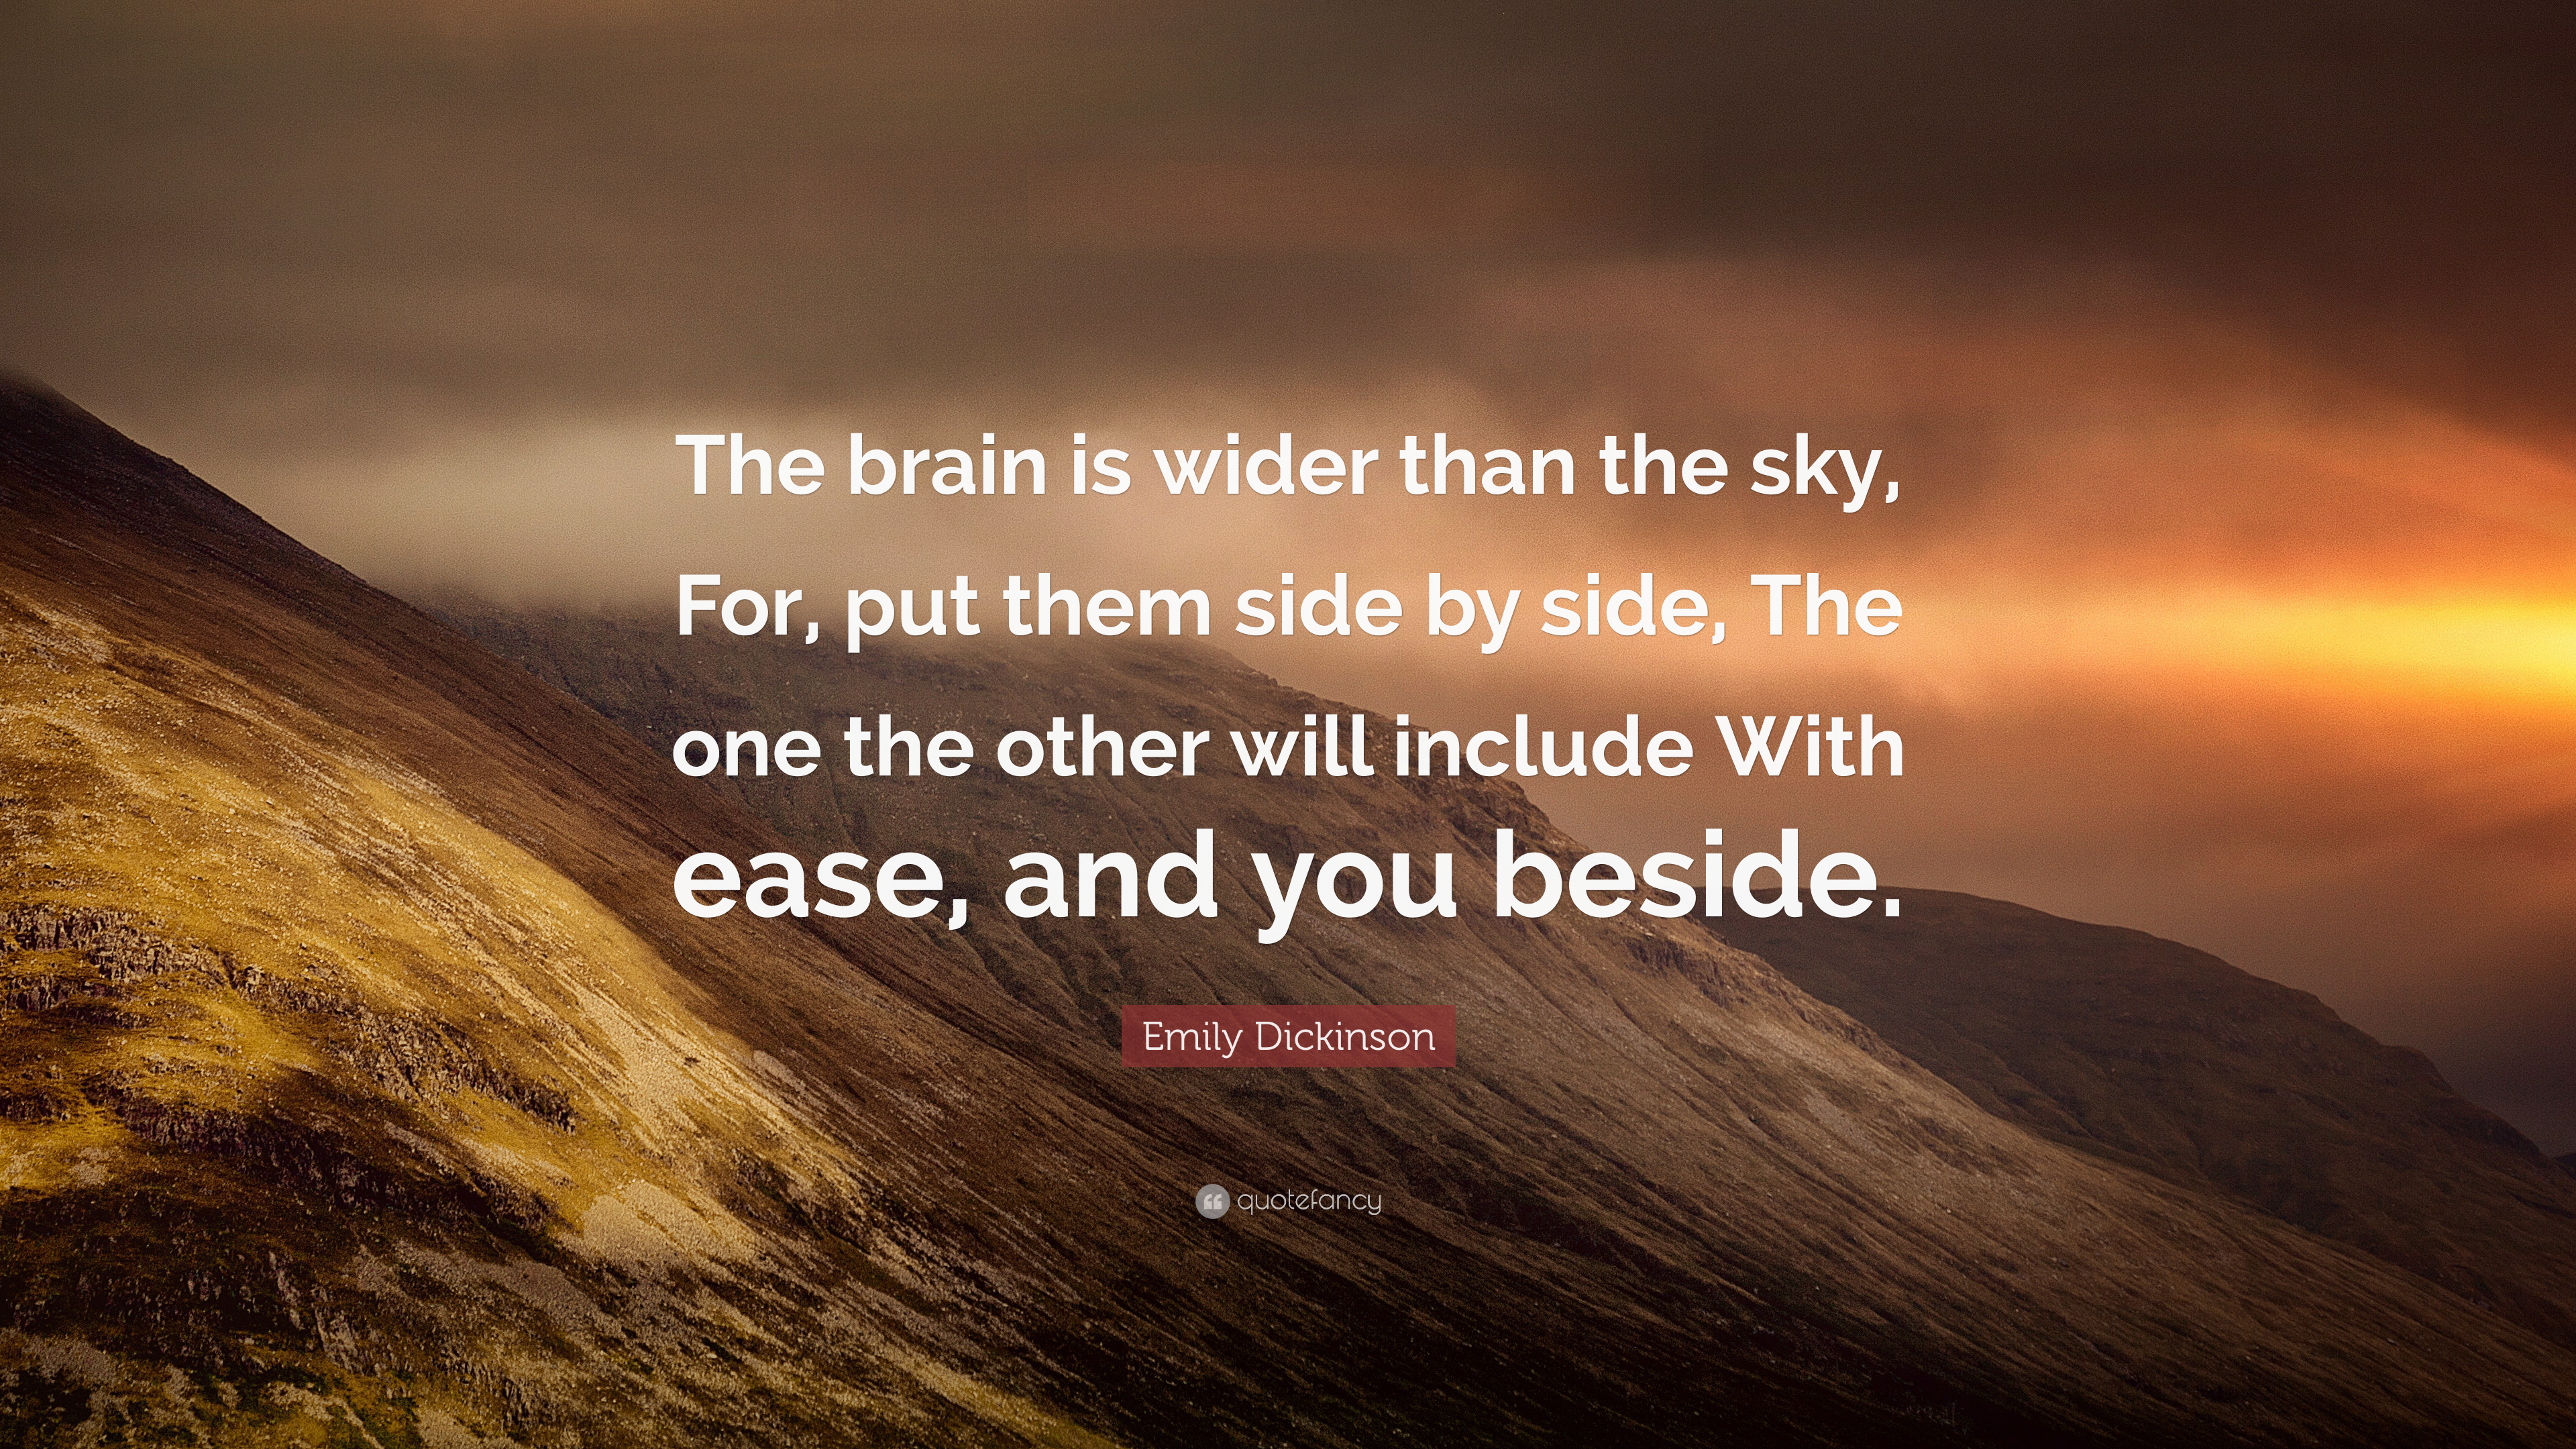 The brain is wider than the sky essay